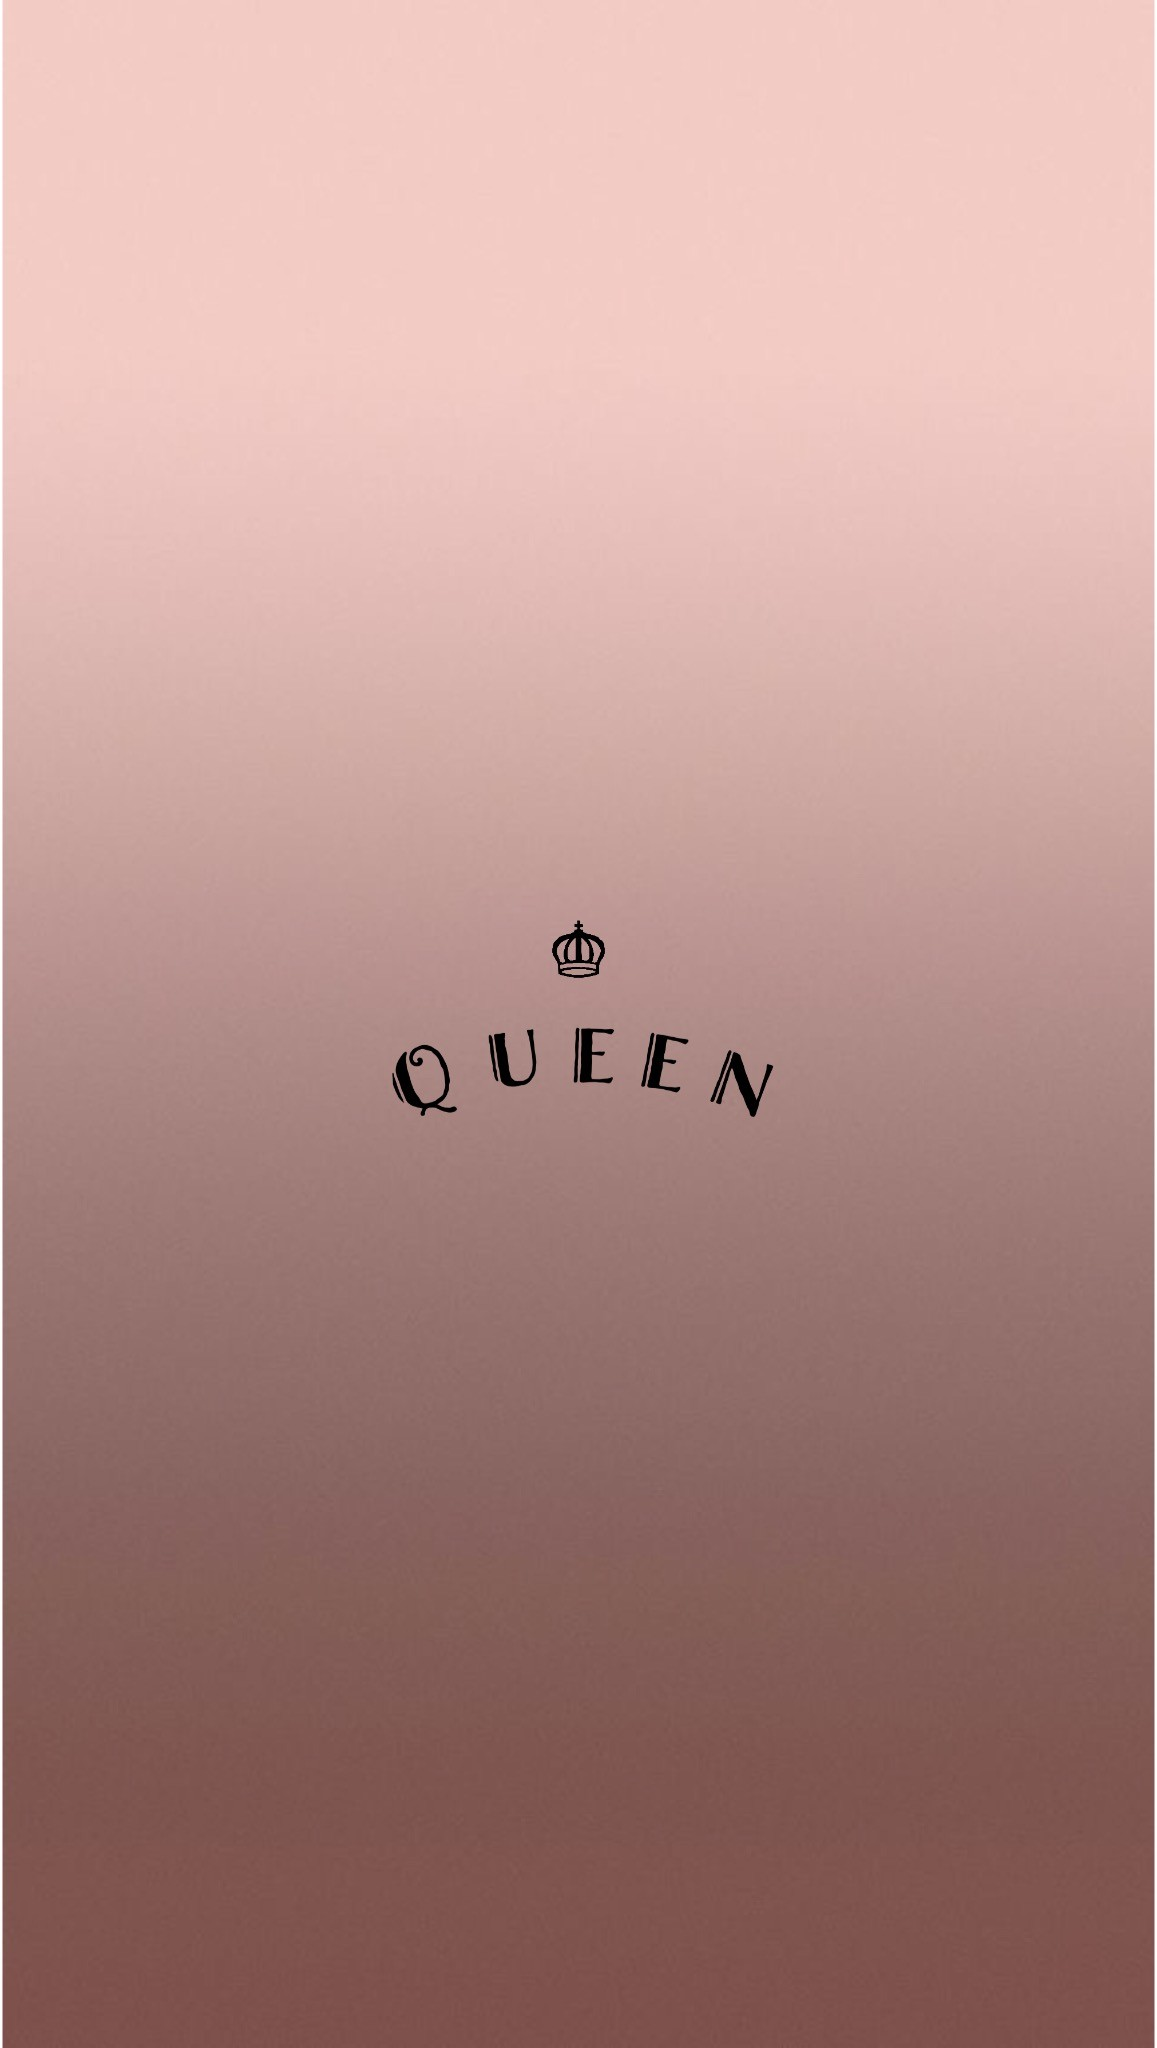 Rose Gold Queen iPhone Wallpaper by @EvaLand